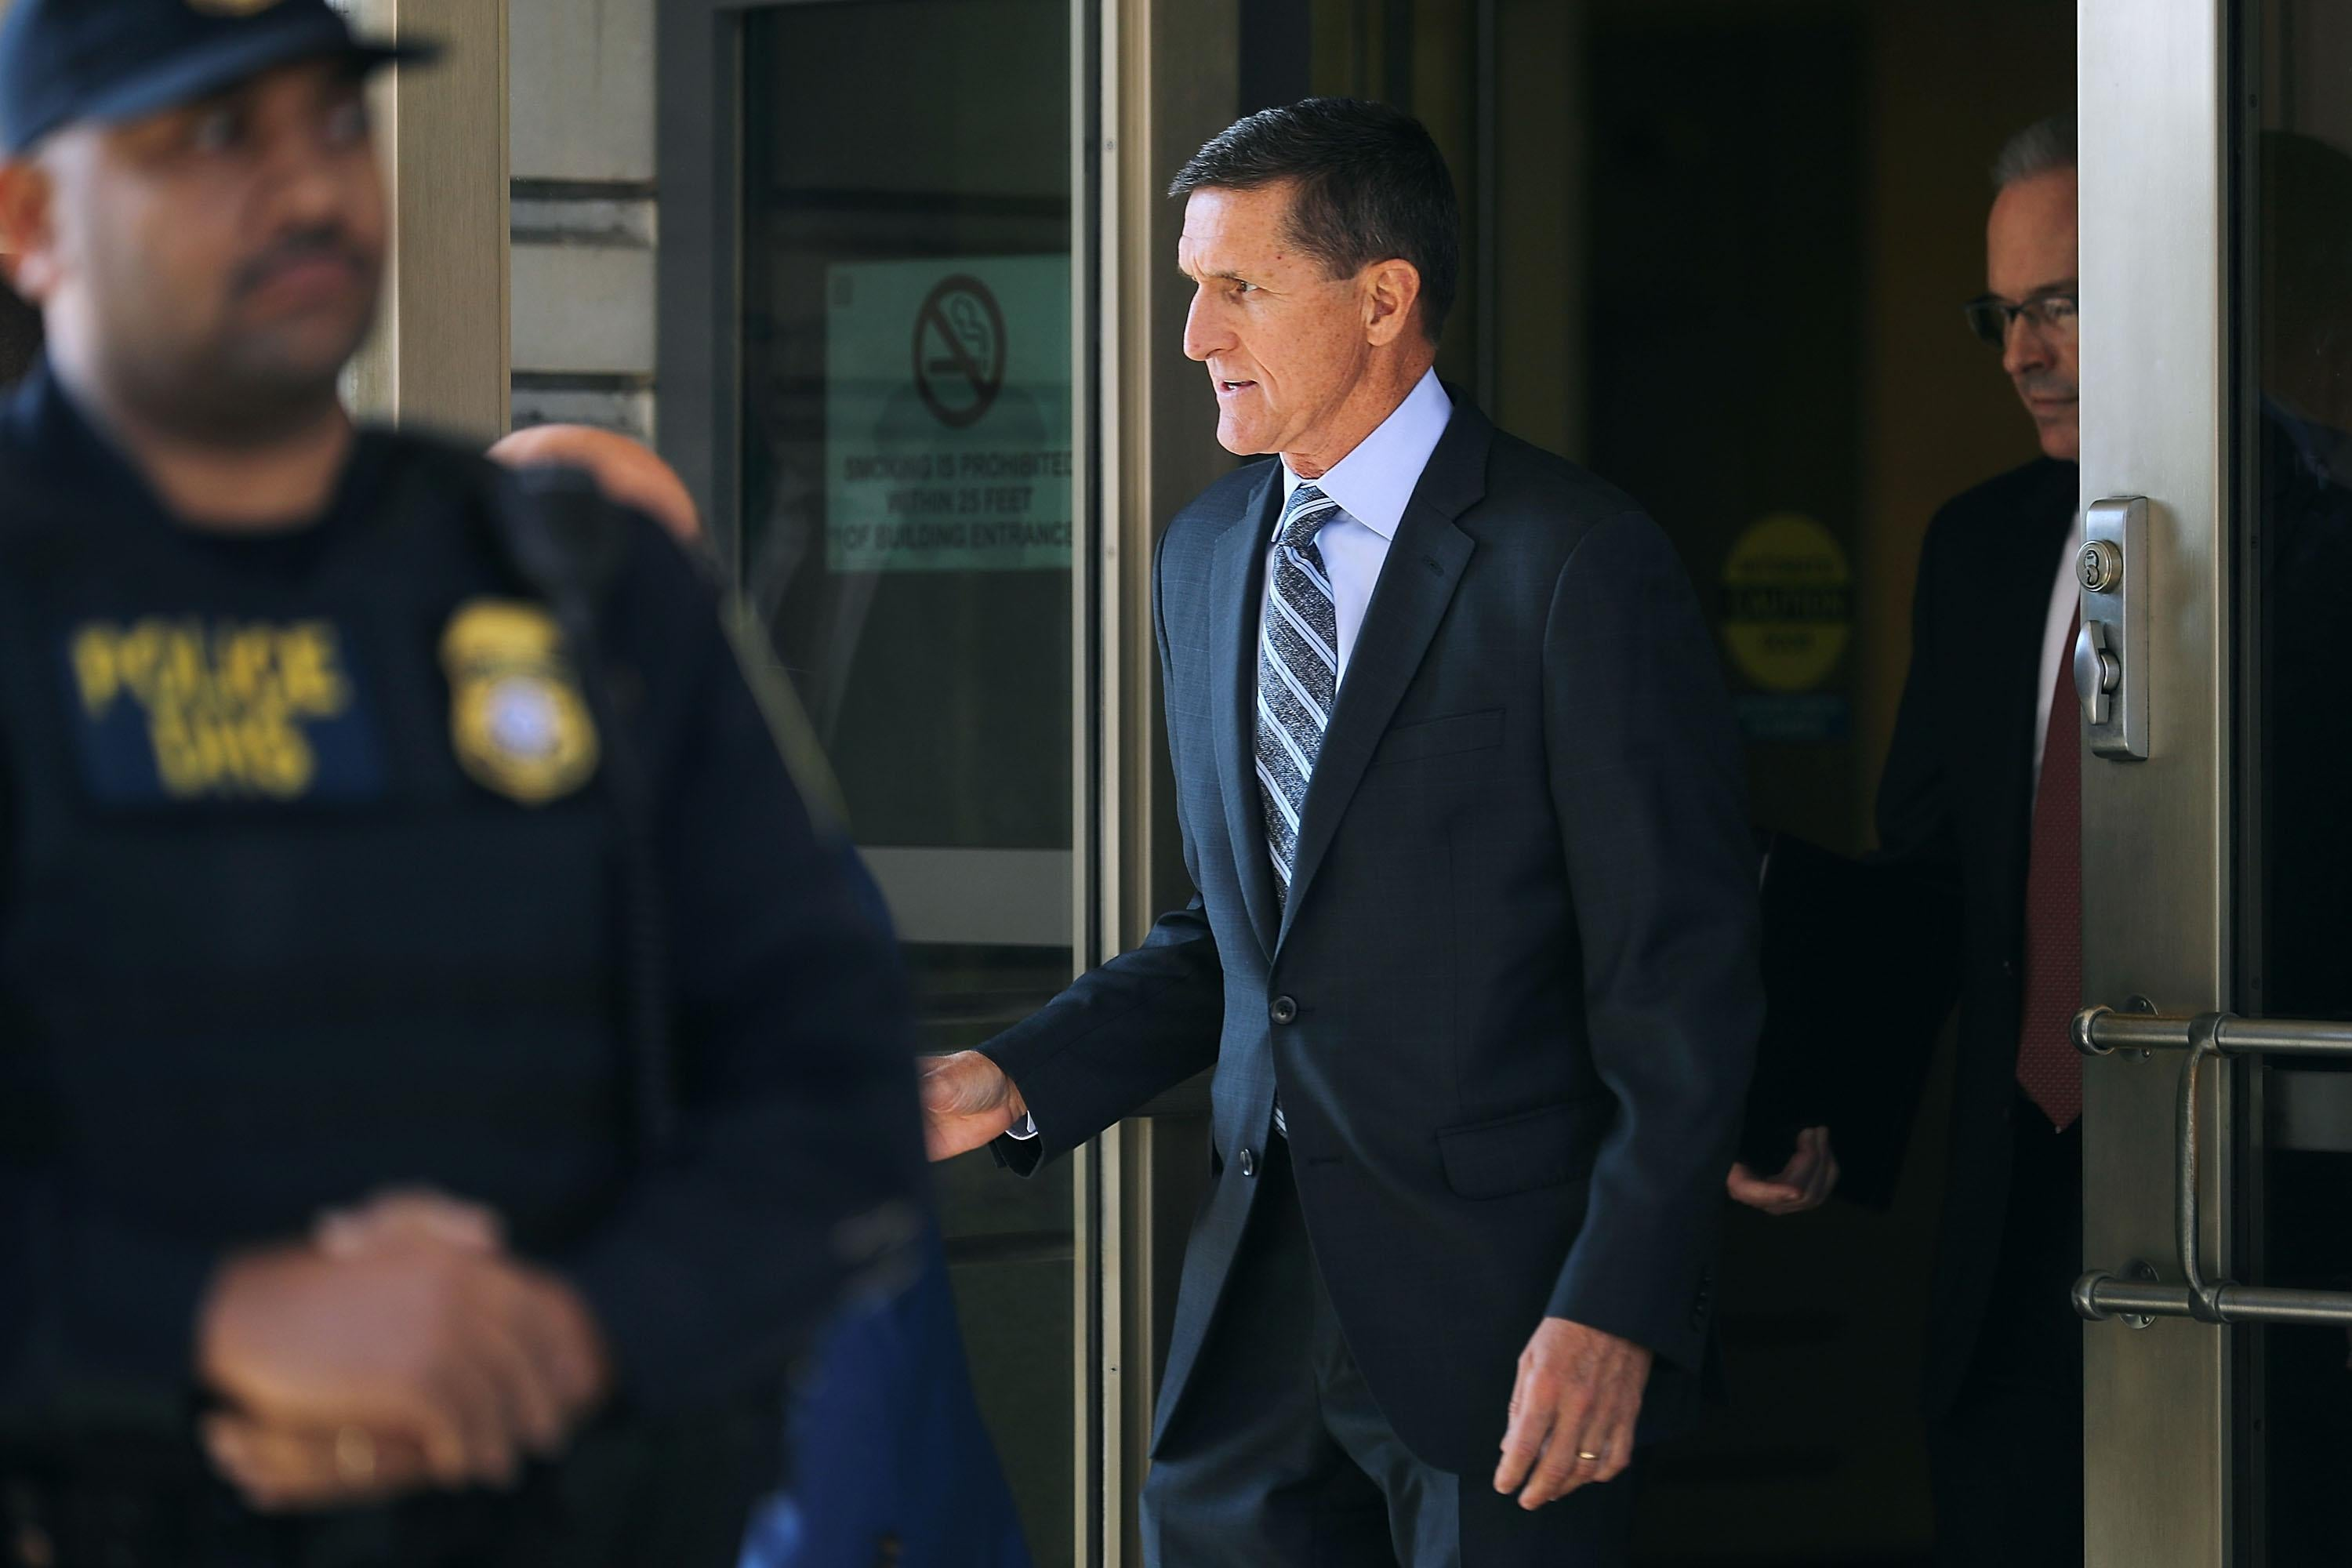 Michael Flynn following his plea hearing on Dec. 1, 2017 in Washington, DC.